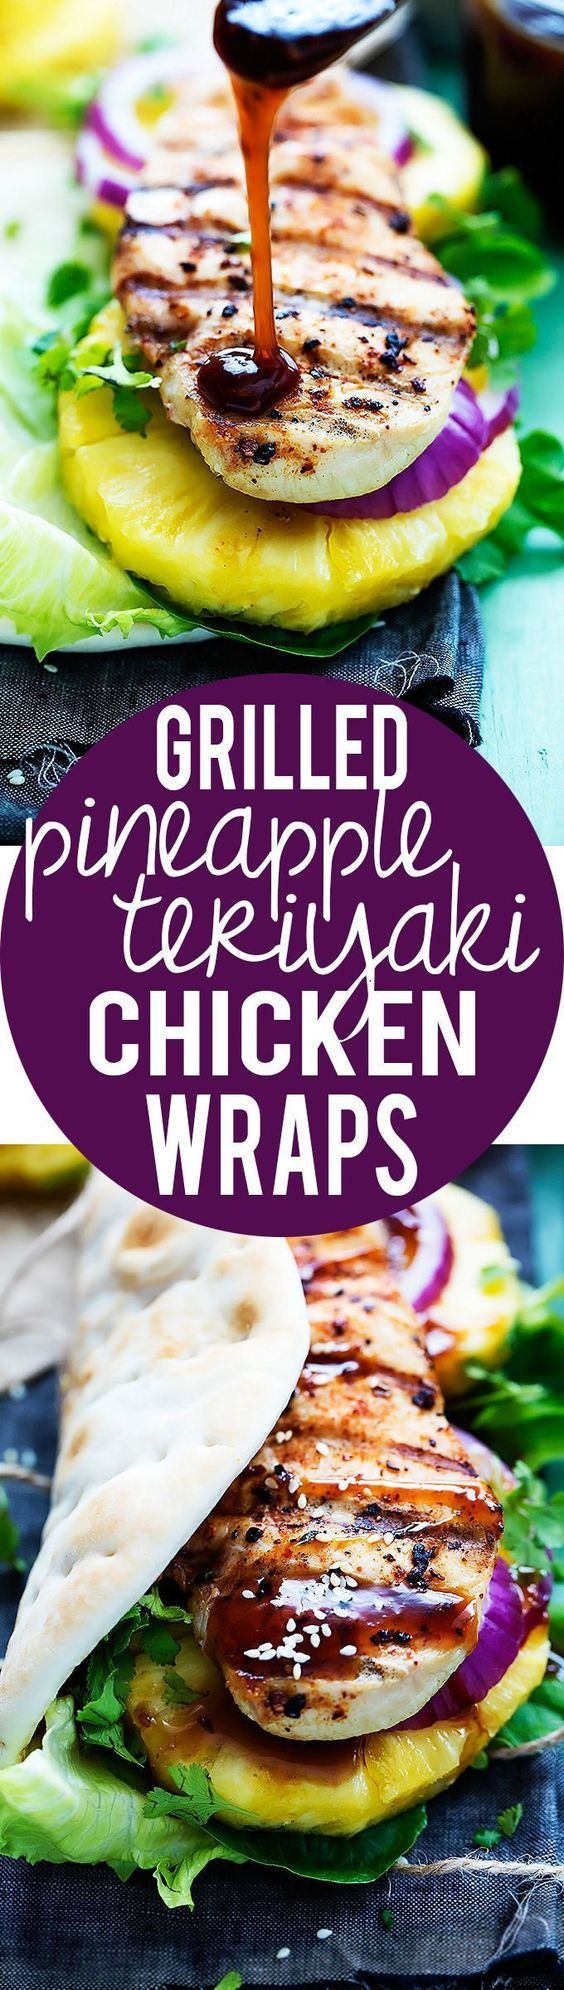 Grilled Pineapple Chicken Teriyaki Wraps: